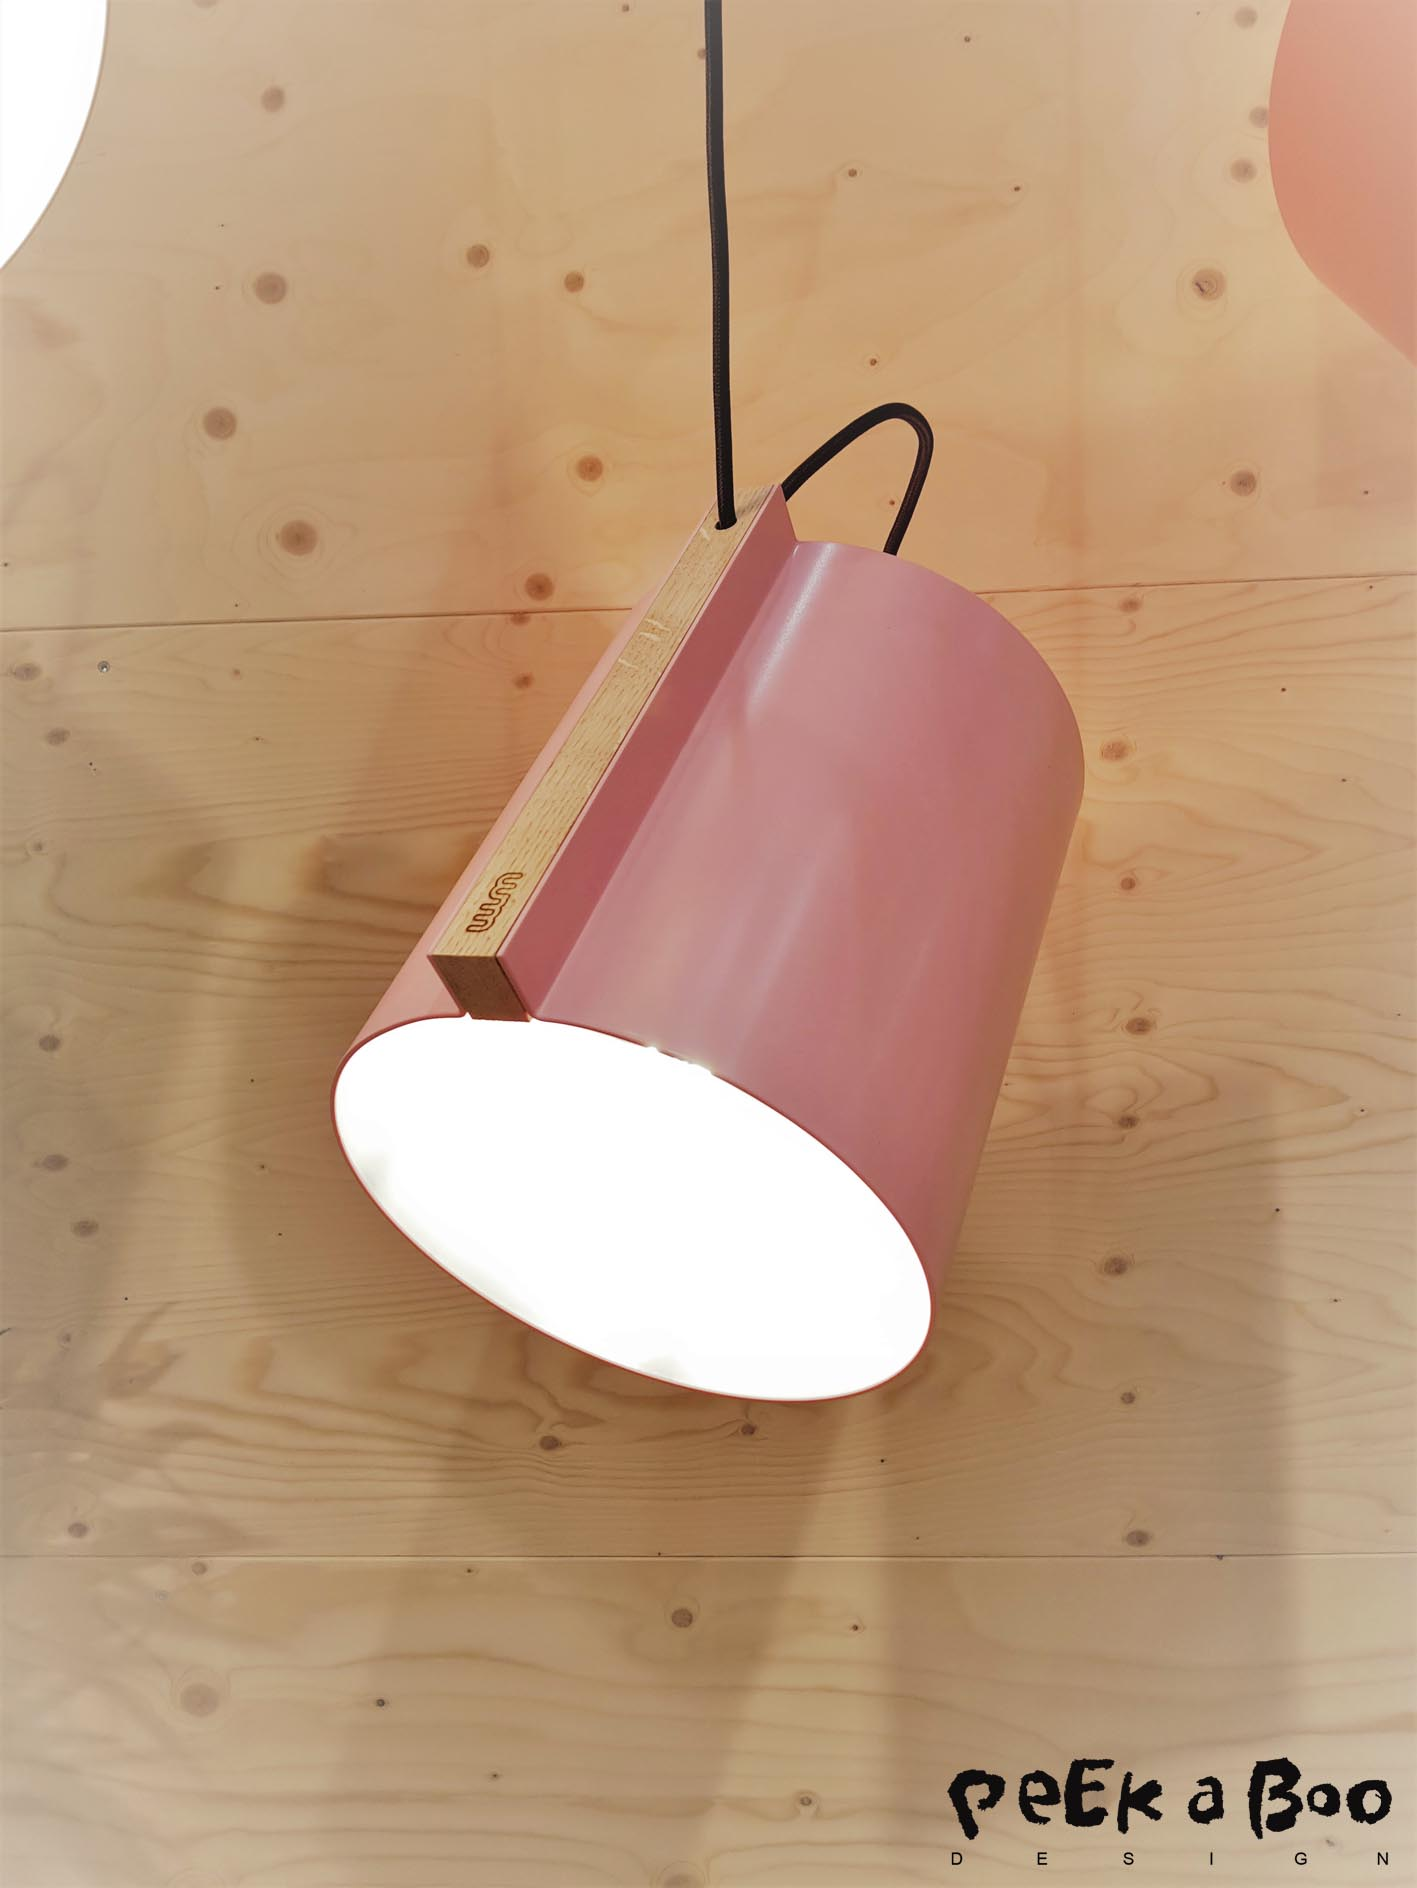 A new danish design brand that focus on local production, so right now is every part of the lamps made here in Denmark.